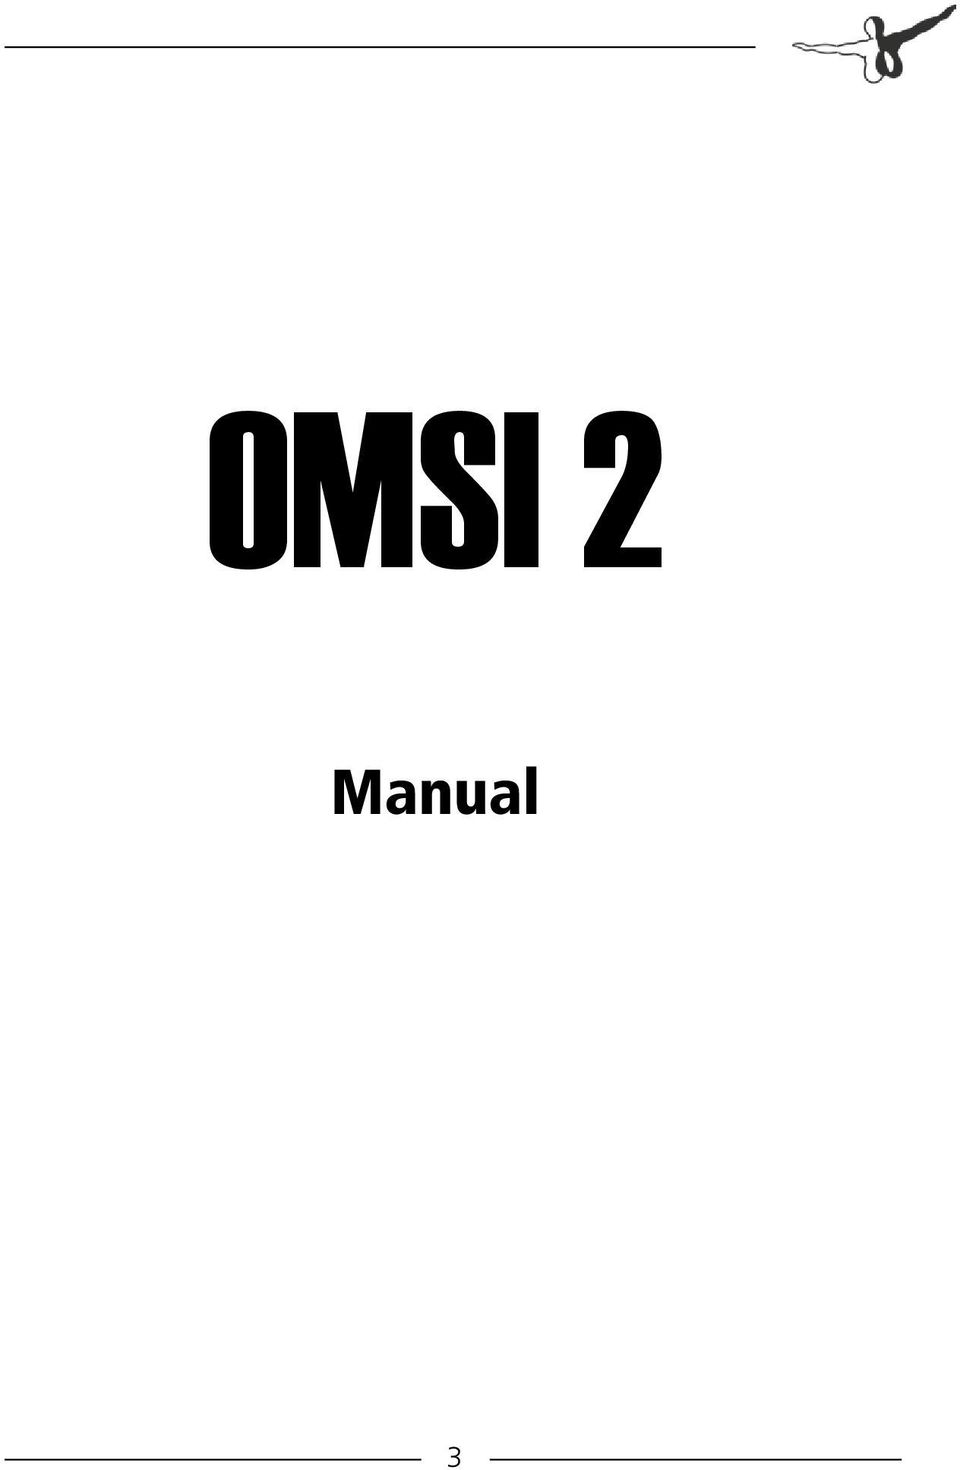 Omsi 2 Berlin Spandau Route 130 Dublin Bus Three Generation Addon 2012 The Omnibus Simulator Berlin Spandau In Times Of Change Manual Pdf